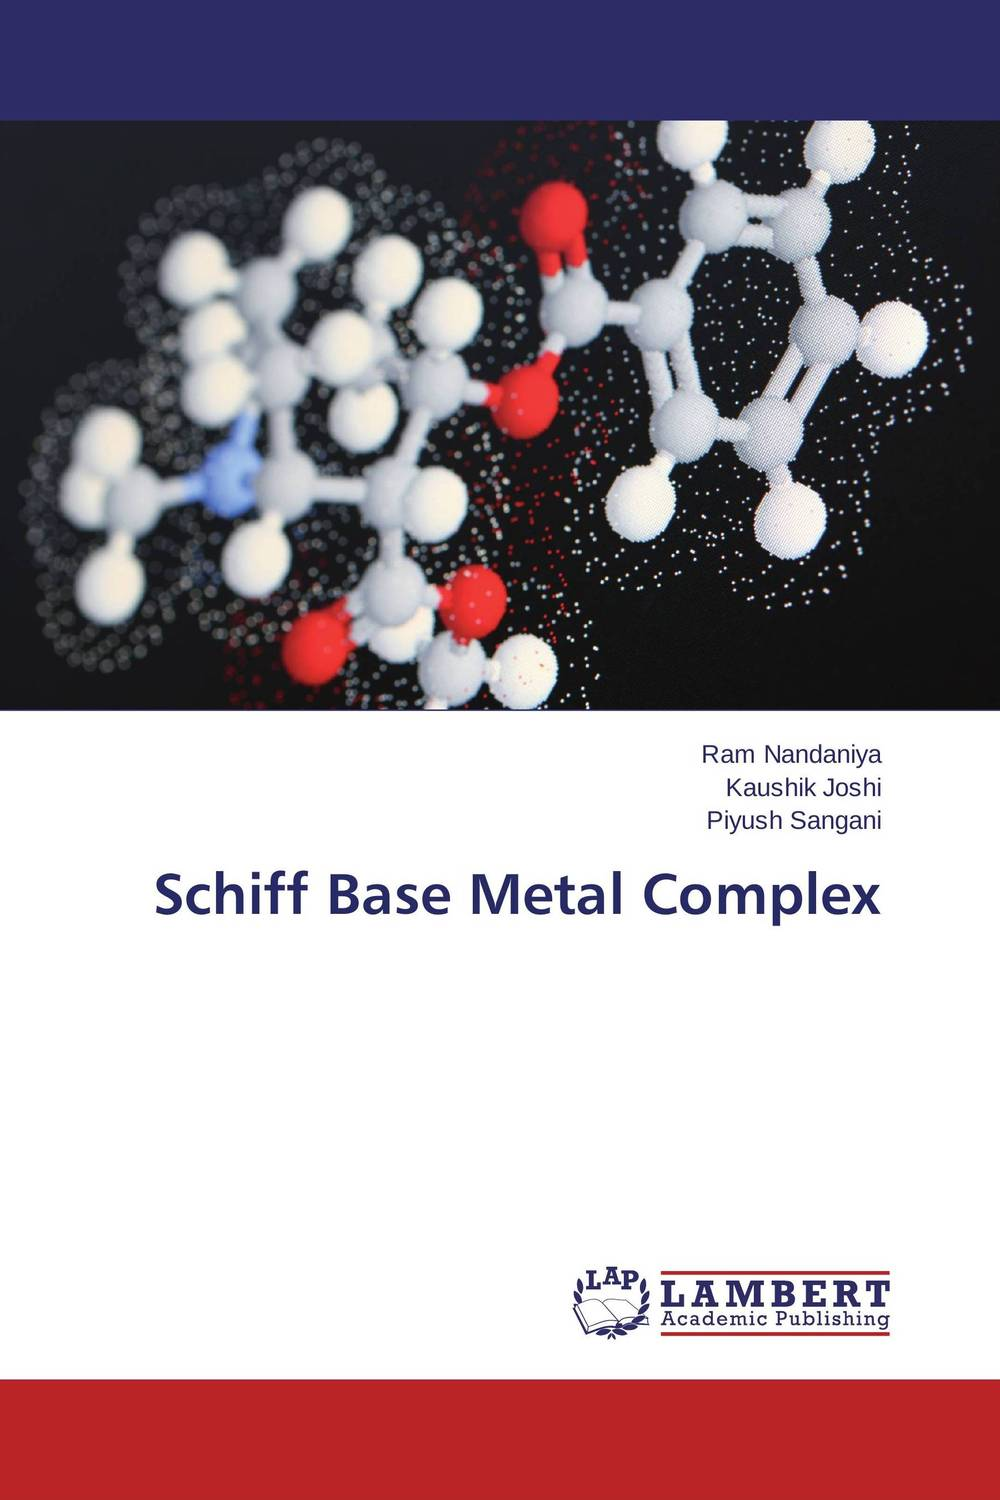 Schiff Base Metal Complex studies on schiff bases derived from acetophenones